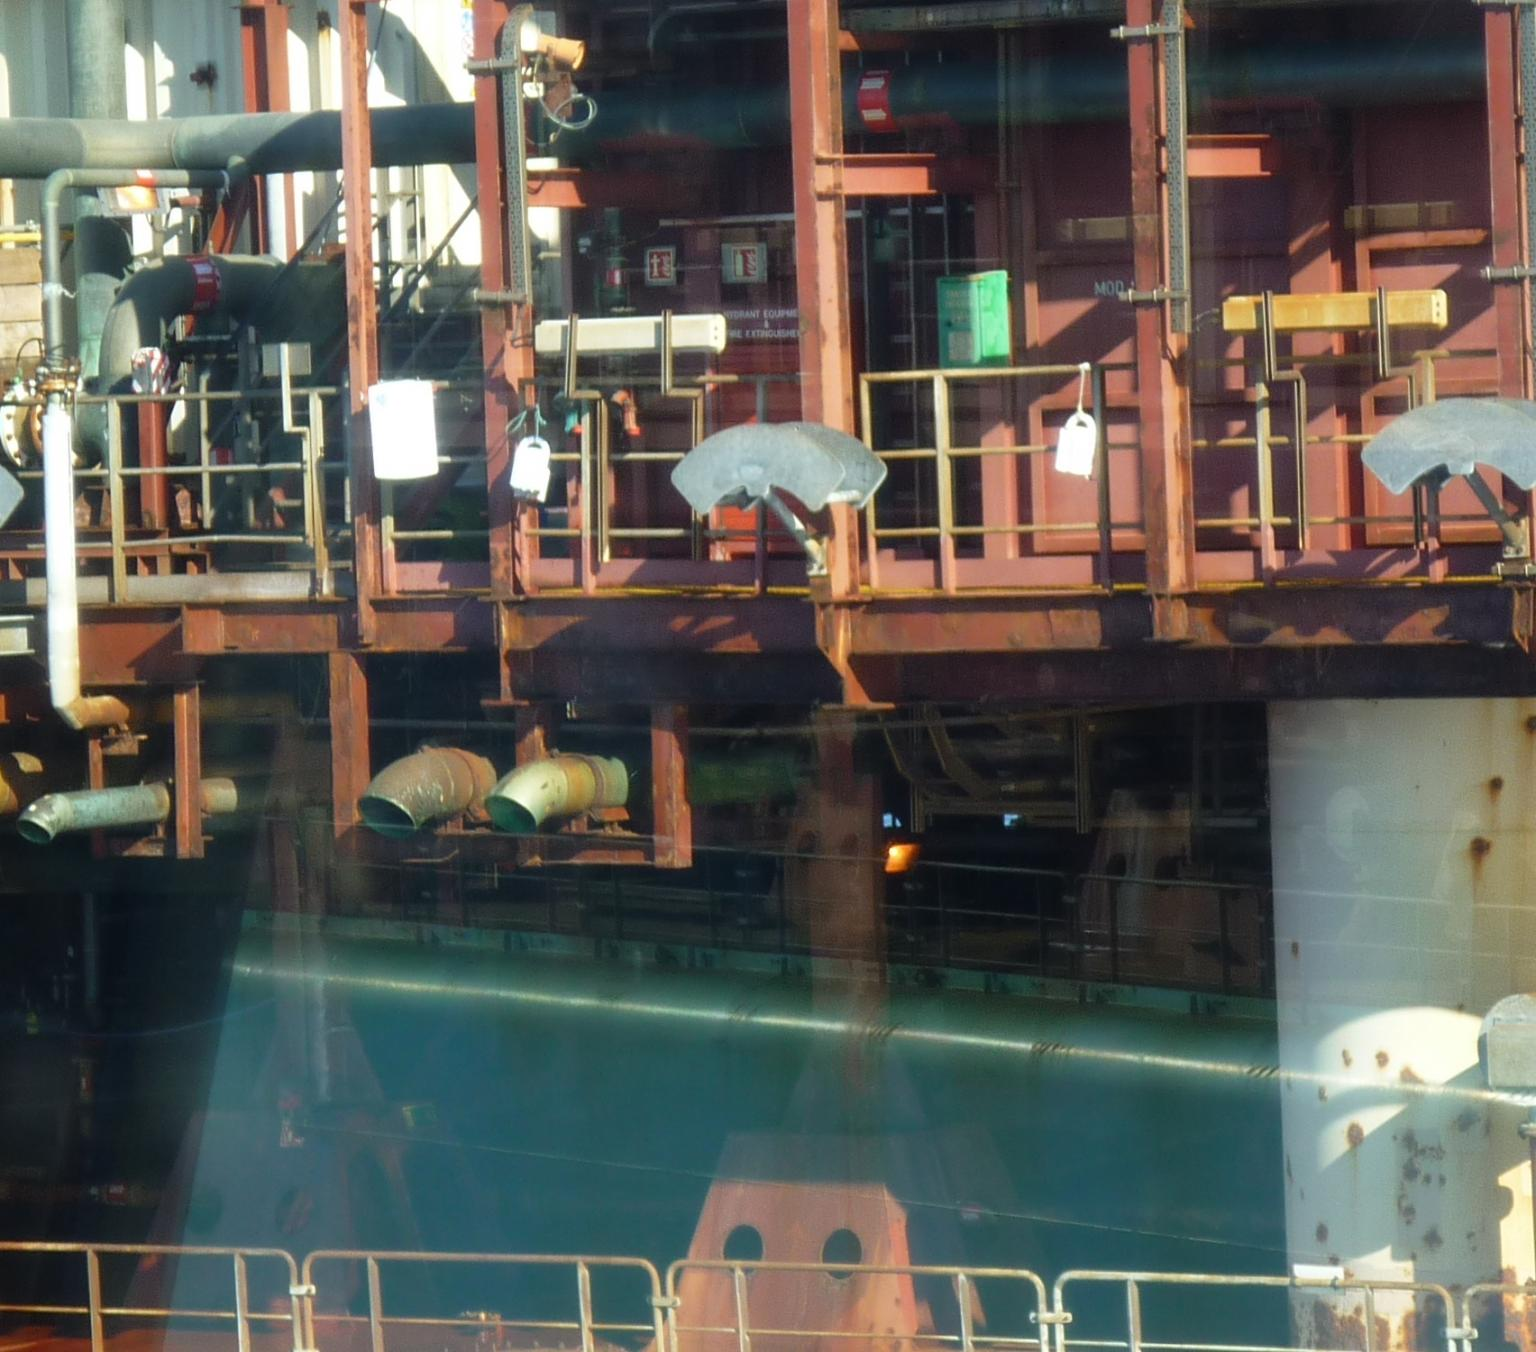 Guidance Marine recommends that each offshore platform undergoes installation and regular maintenance inspections on all of the platform instrumentation